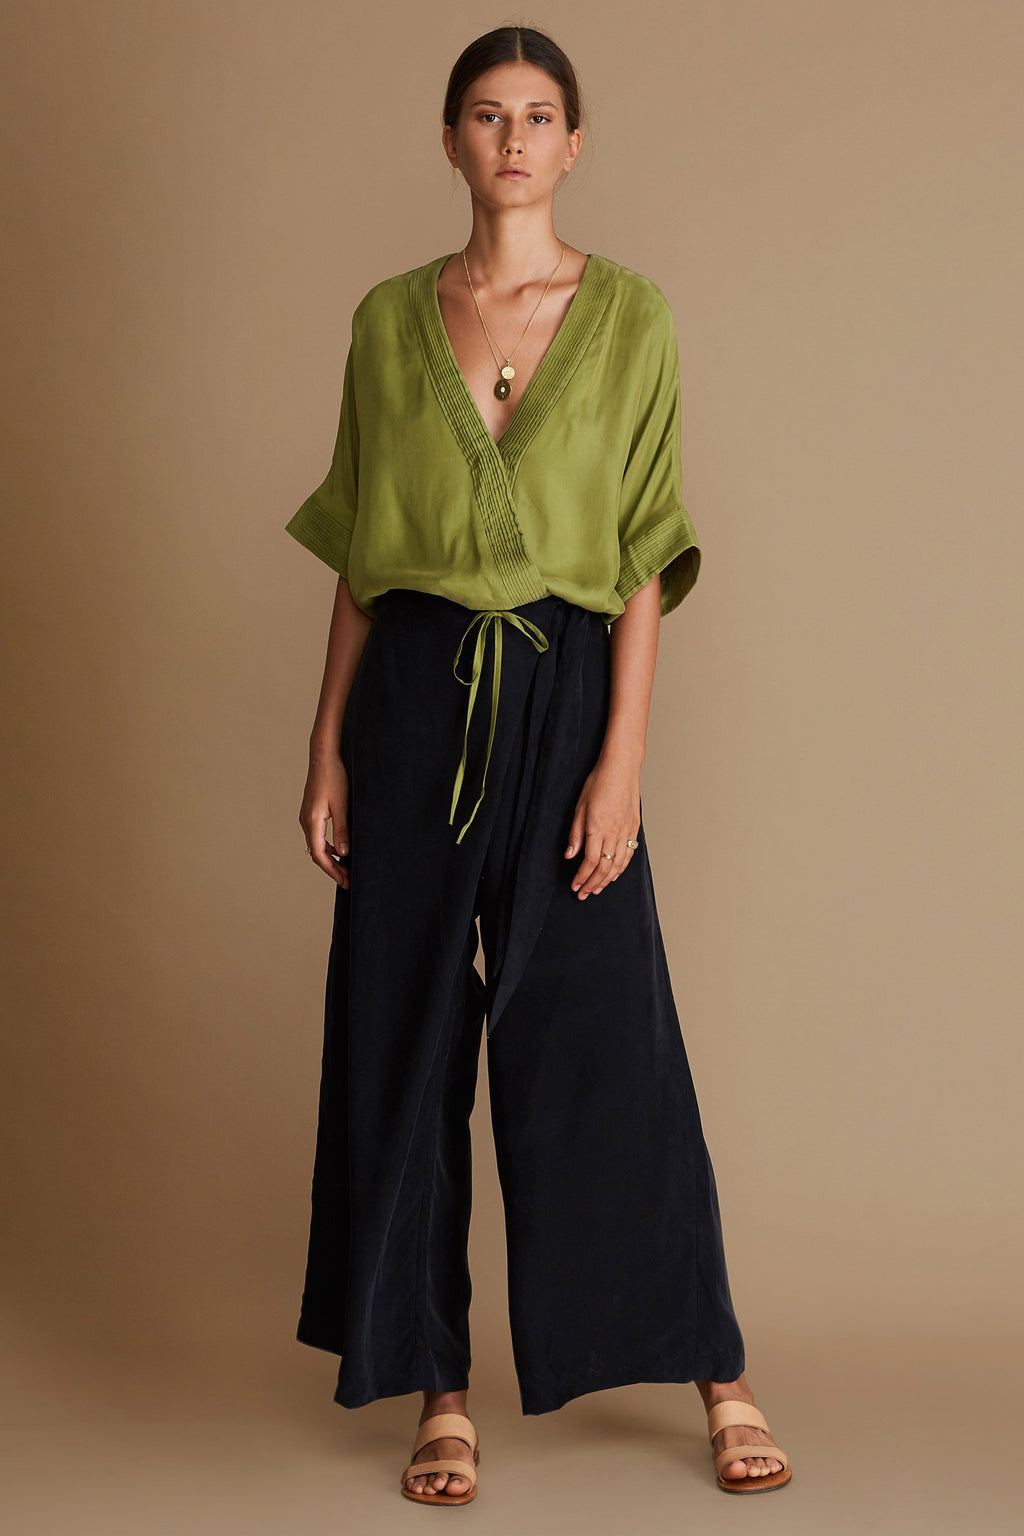 Sancia Daria blouse in Melon online at PAYA Boutique - Free delivery online